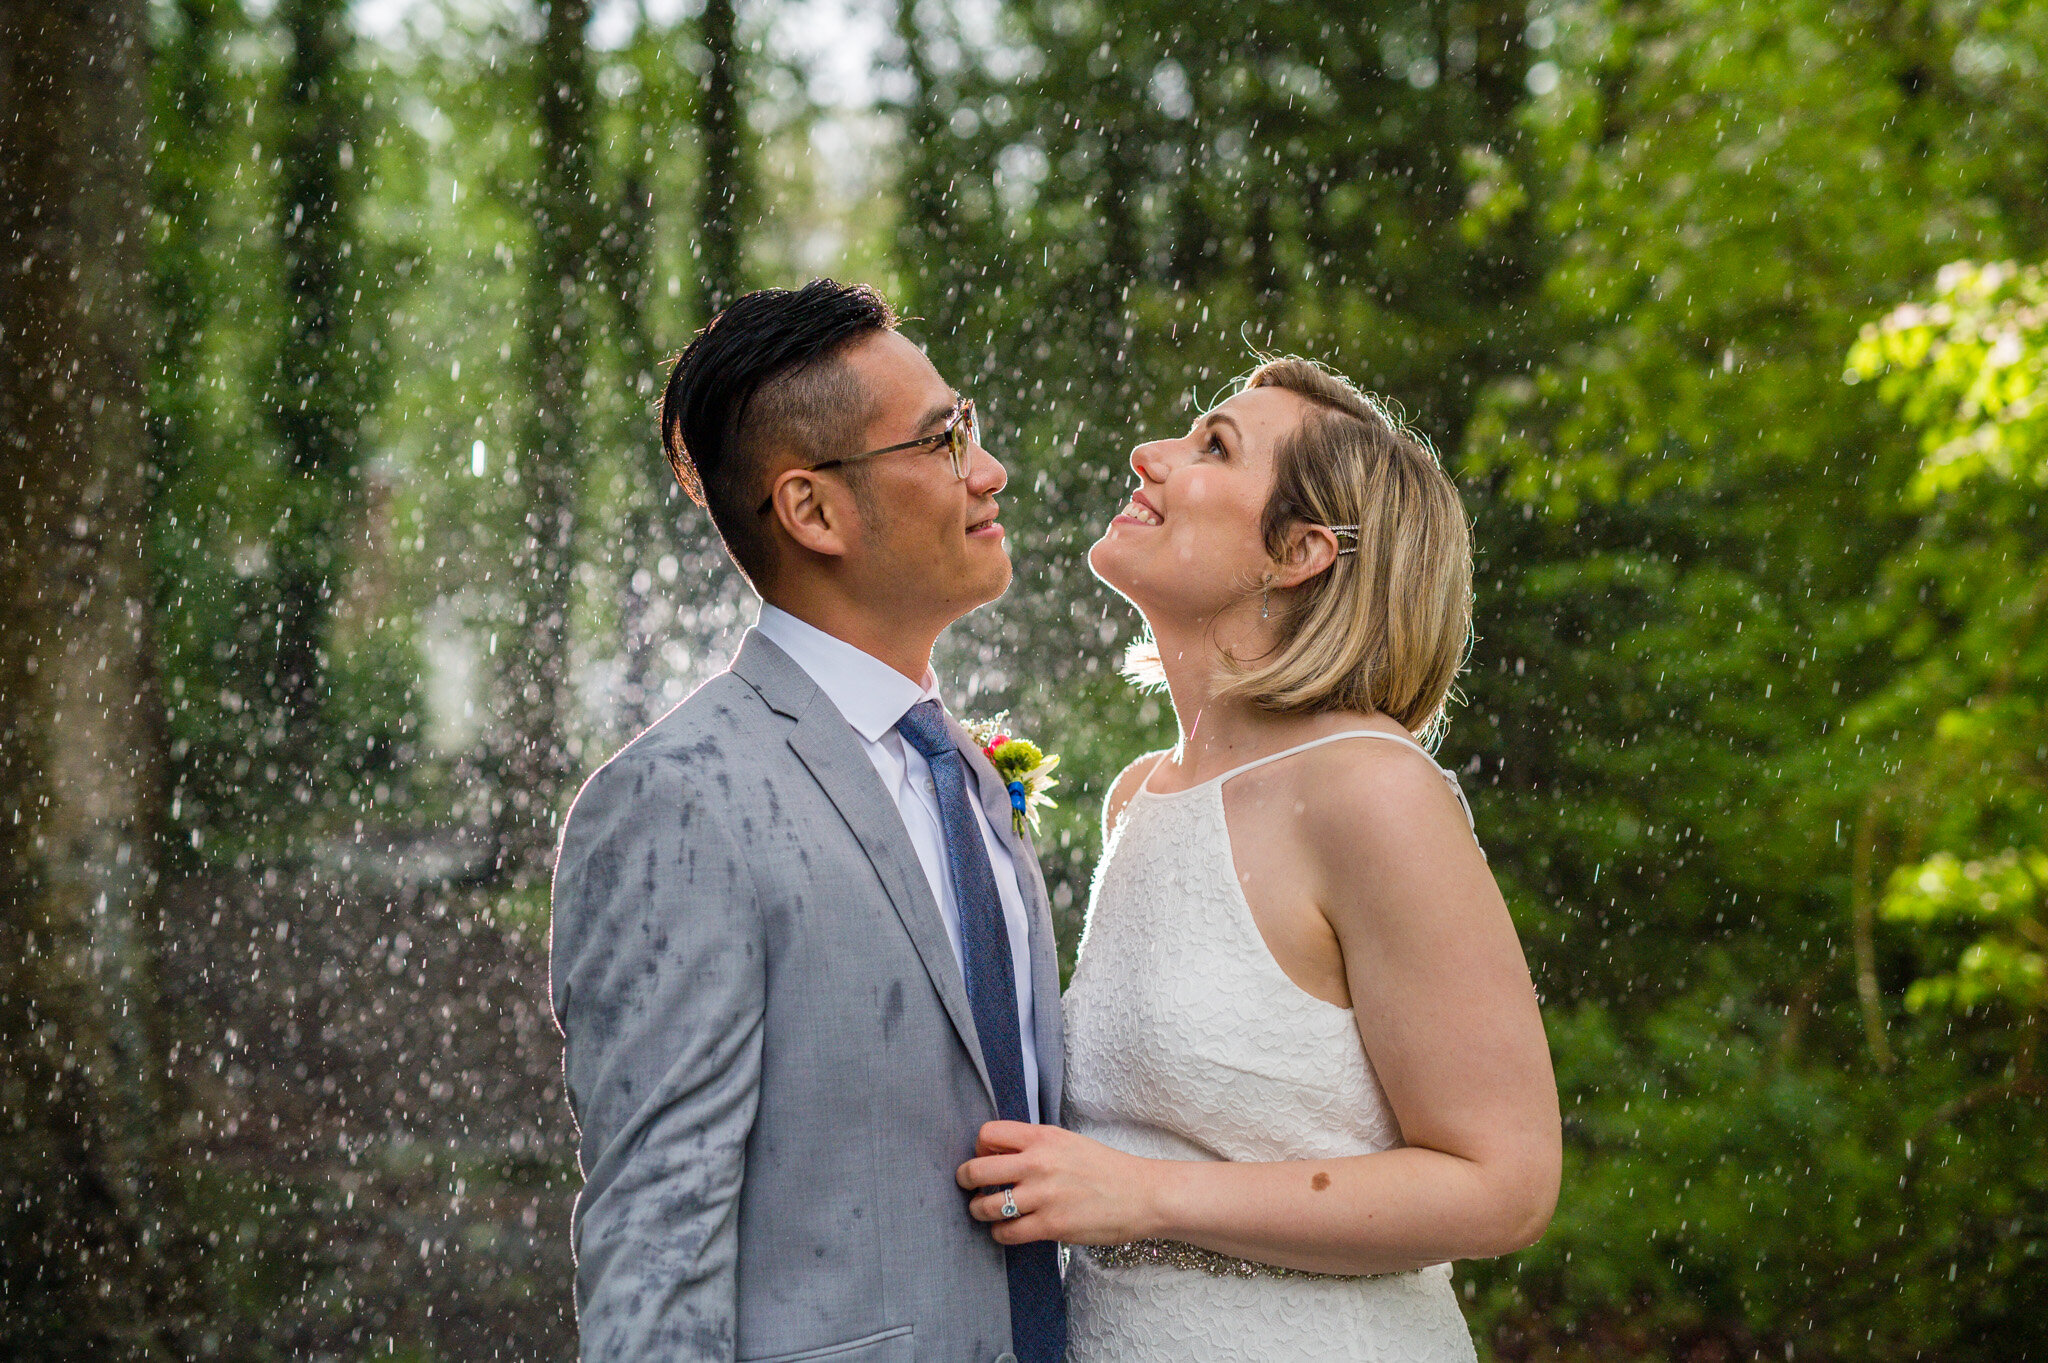 Rainy day wedding portraits